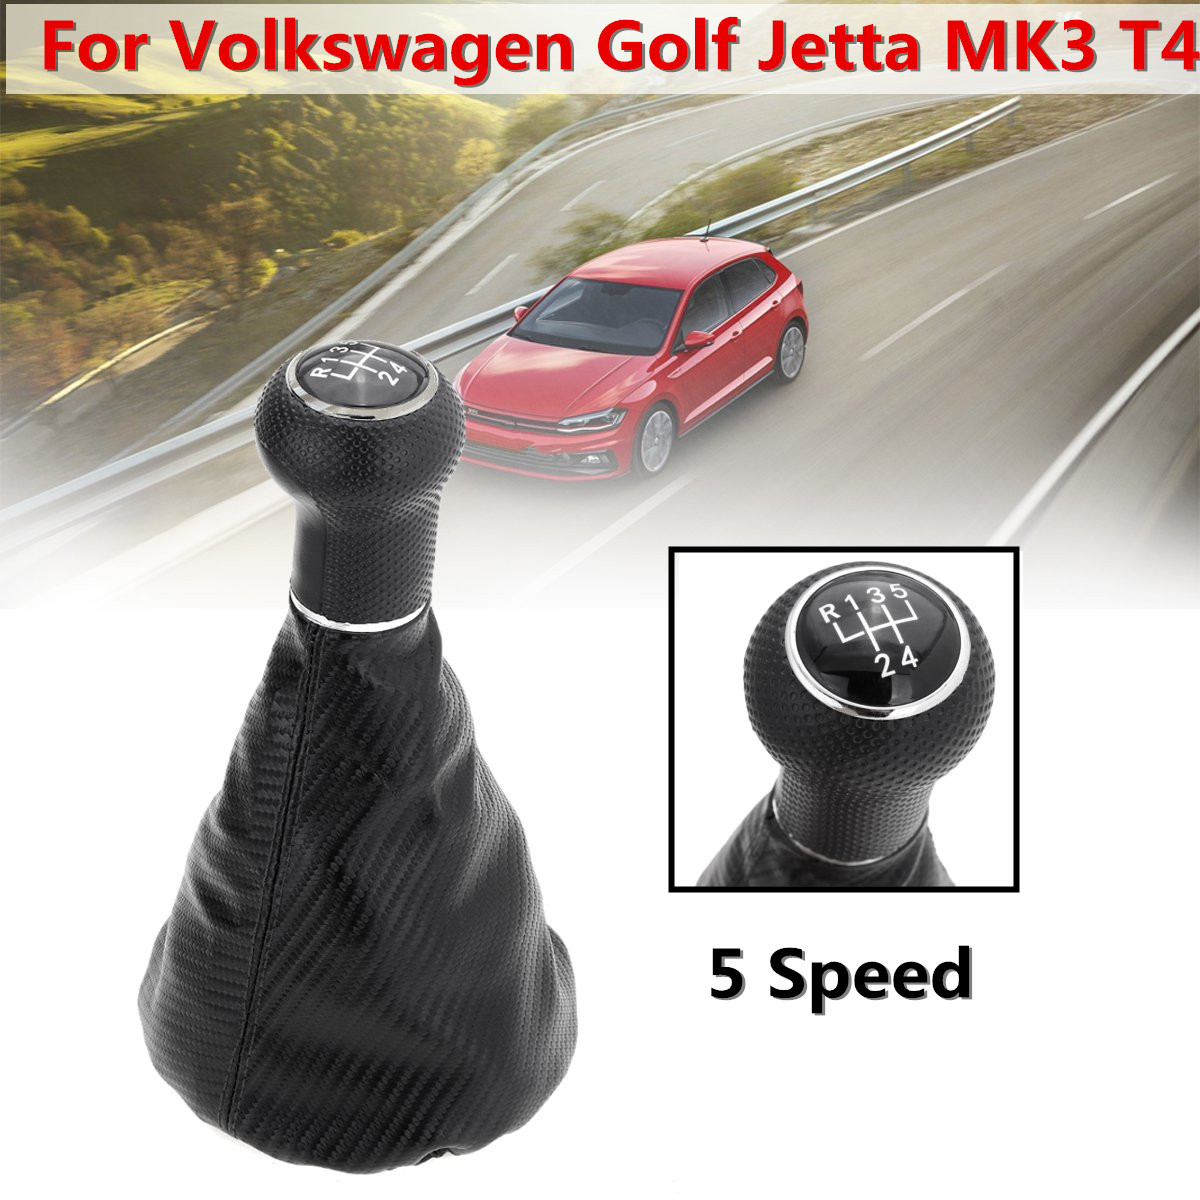 5 Speed Black Car <font><b>Gear</b></font> Shift <font><b>Knob</b></font> Gaiter Boot For <font><b>VW</b></font> <font><b>Golf</b></font> <font><b>MK3</b></font> T4 Carbon Fiber Leather <font><b>Gear</b></font> Shift <font><b>Knobs</b></font> Cover image